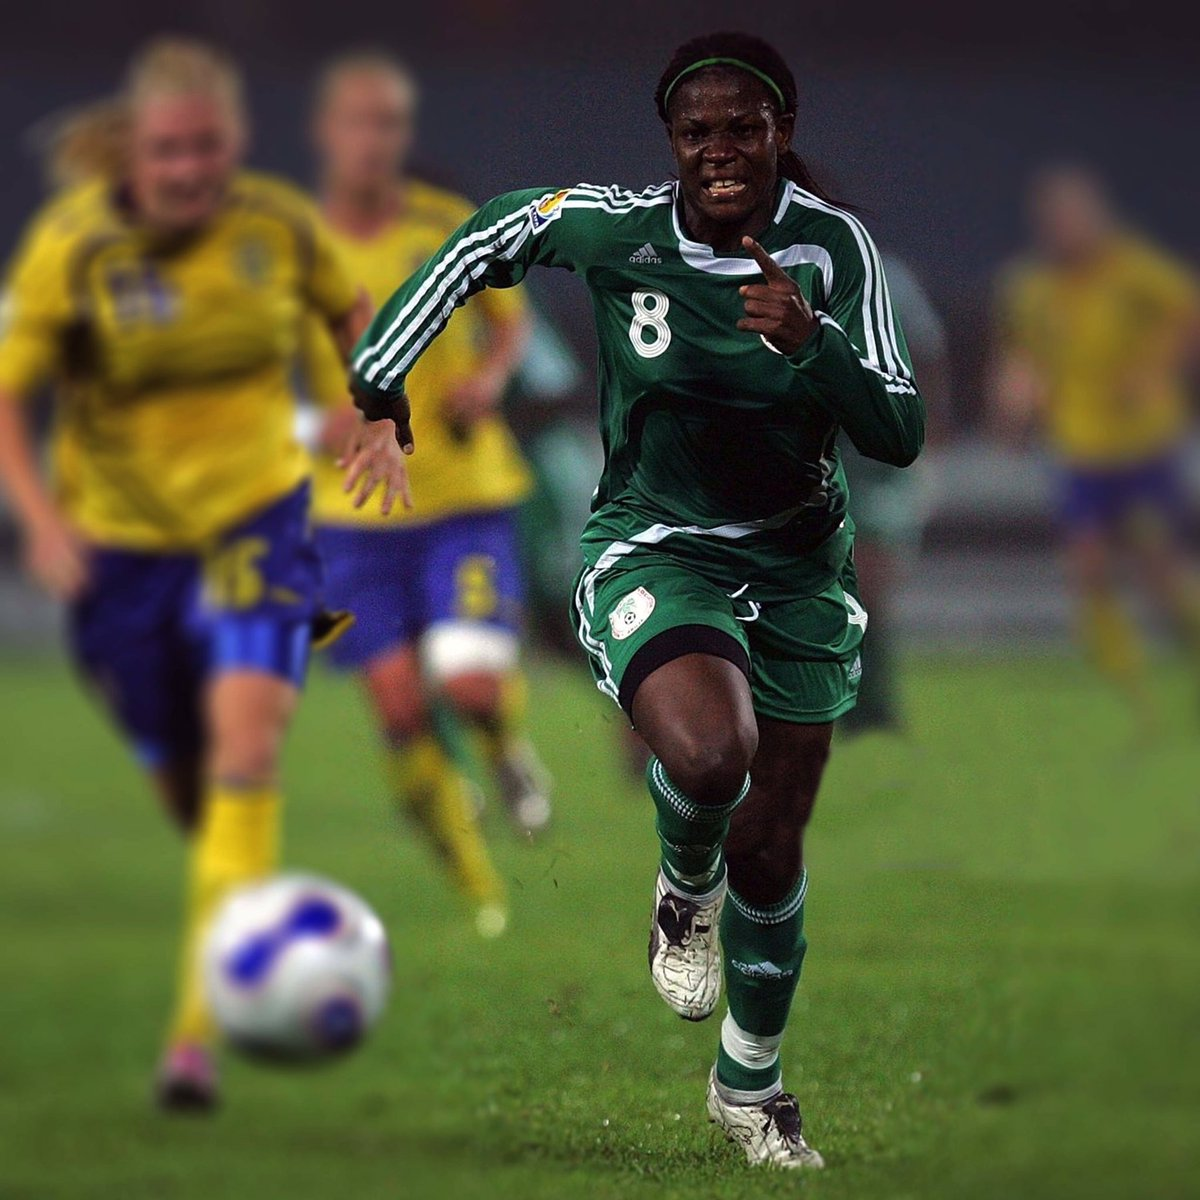 The NFF have announced the demise of former Super falcons captain Ifeanyichukwu Stephanie Chiejine.  Chiejine passed on after a brief illness on Wednesday, 21st August 2019.  May her soul rest in perfect peace   #brilafm #brilasports #PrayForTheAmazon #superfalcons <br>http://pic.twitter.com/vNCU47IVeE